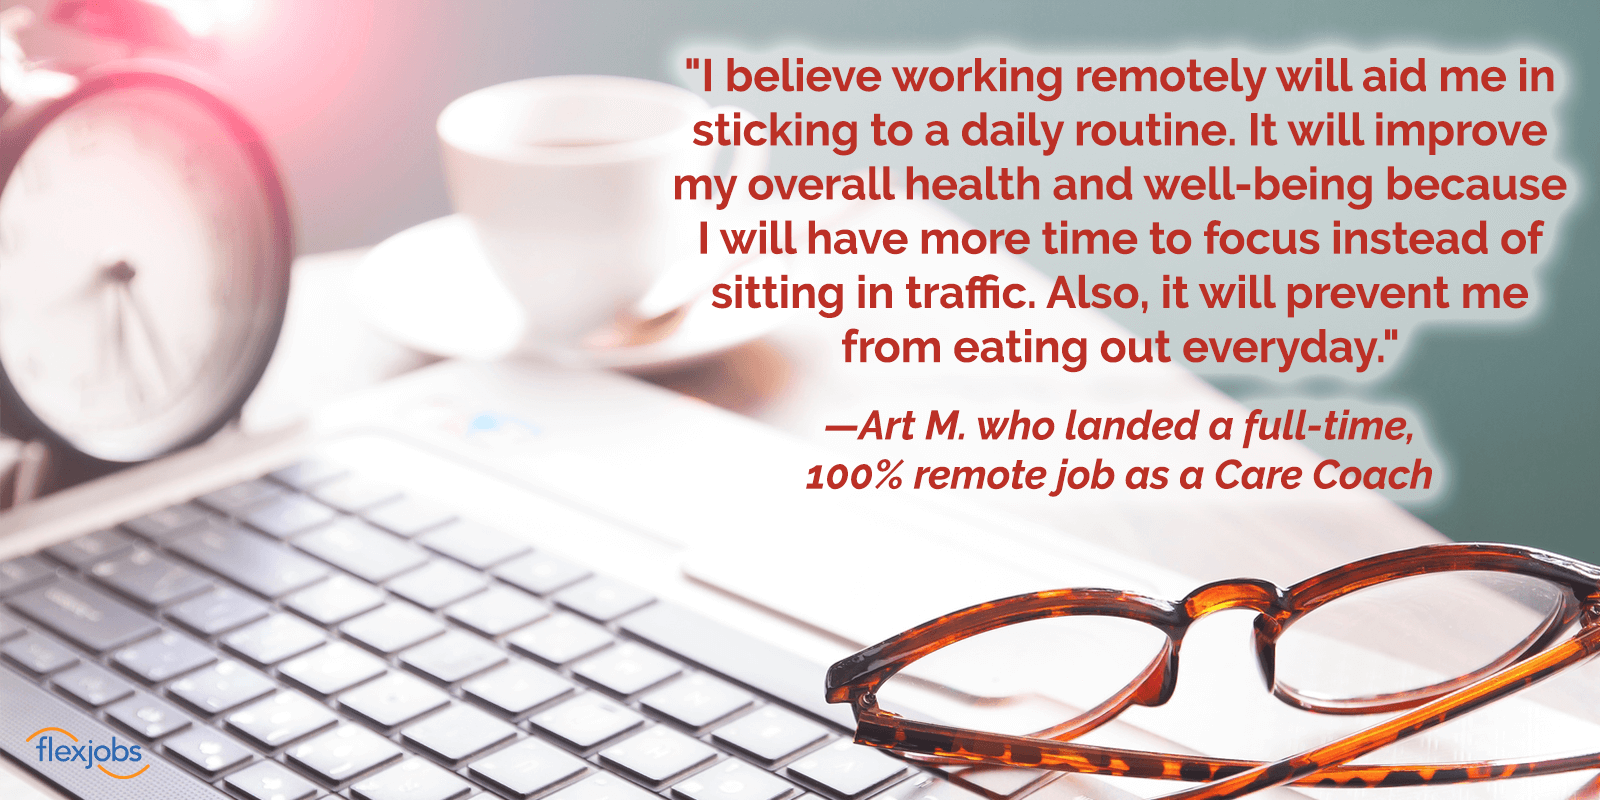 Woman Utilizes FlexJobs' Membership Perks to Quickly Find Remote Job 2